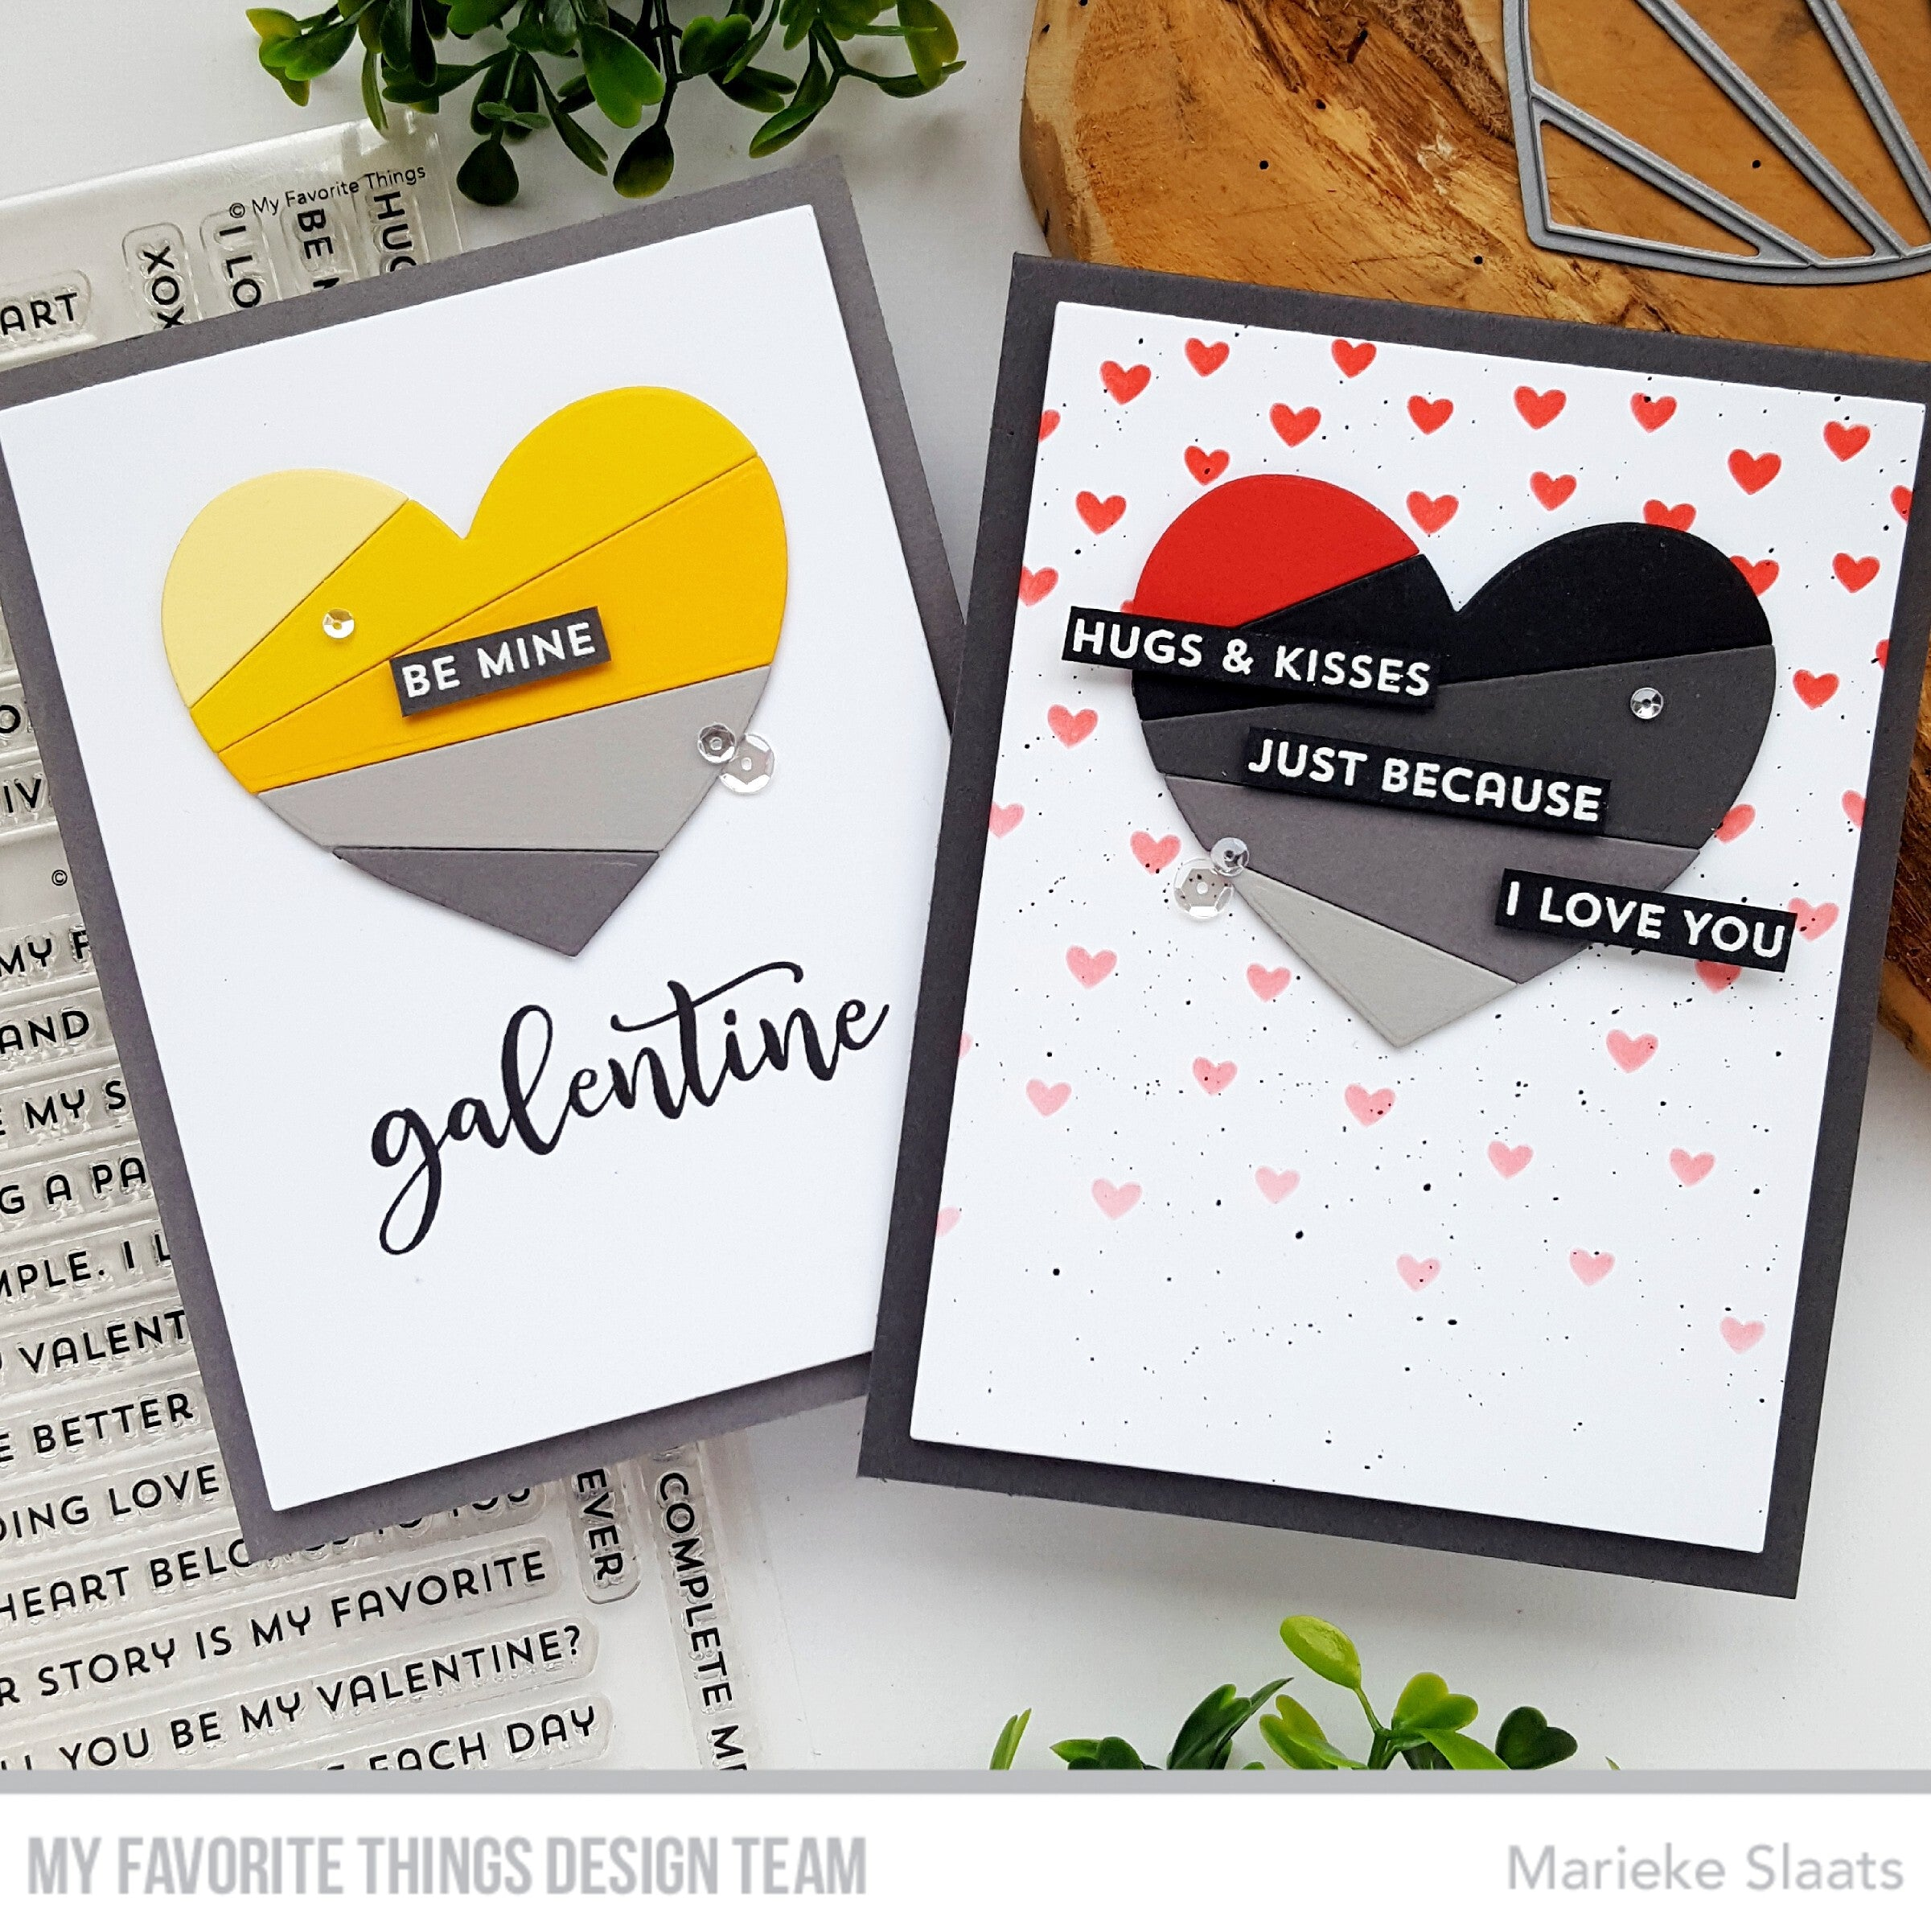 Handmade cards from Marieke Slaats featuring products from My Favorite Things #mftstamps